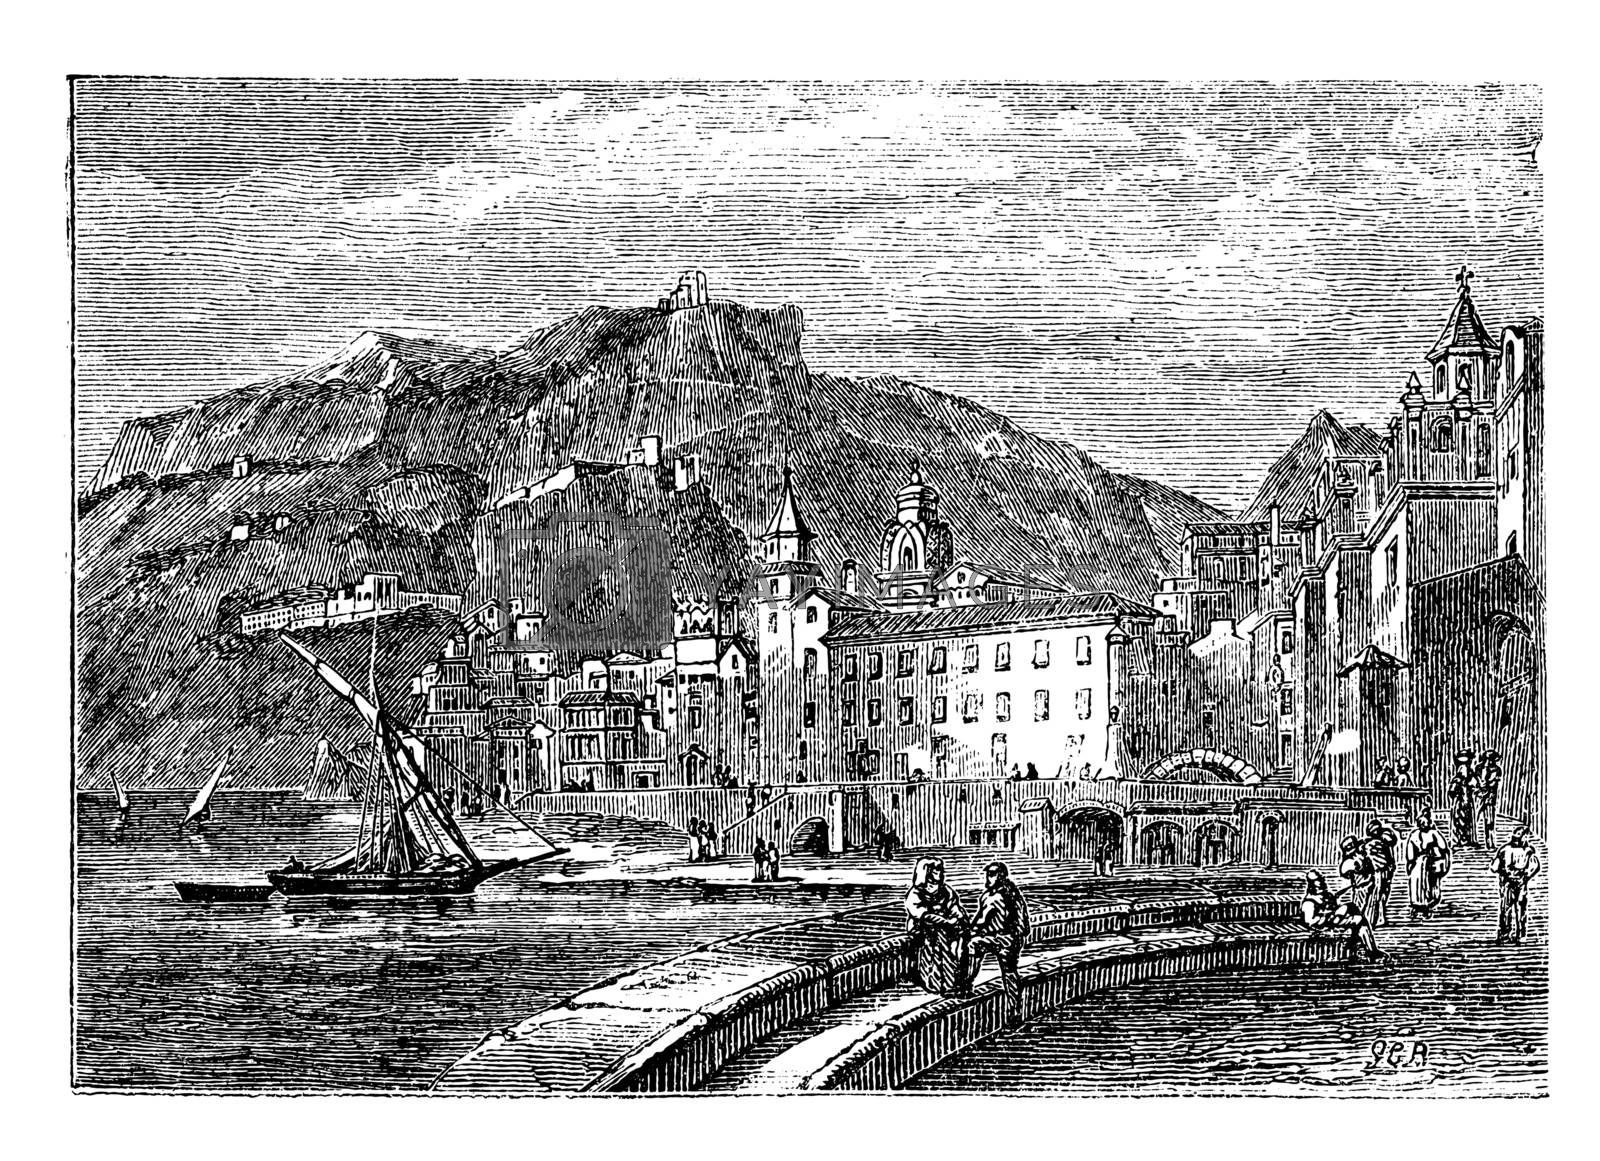 Amalfi in 1890, in the province of Salemo, Italy. Vintage engraving. City scenery of the town of Amalfi. Vector illustration.